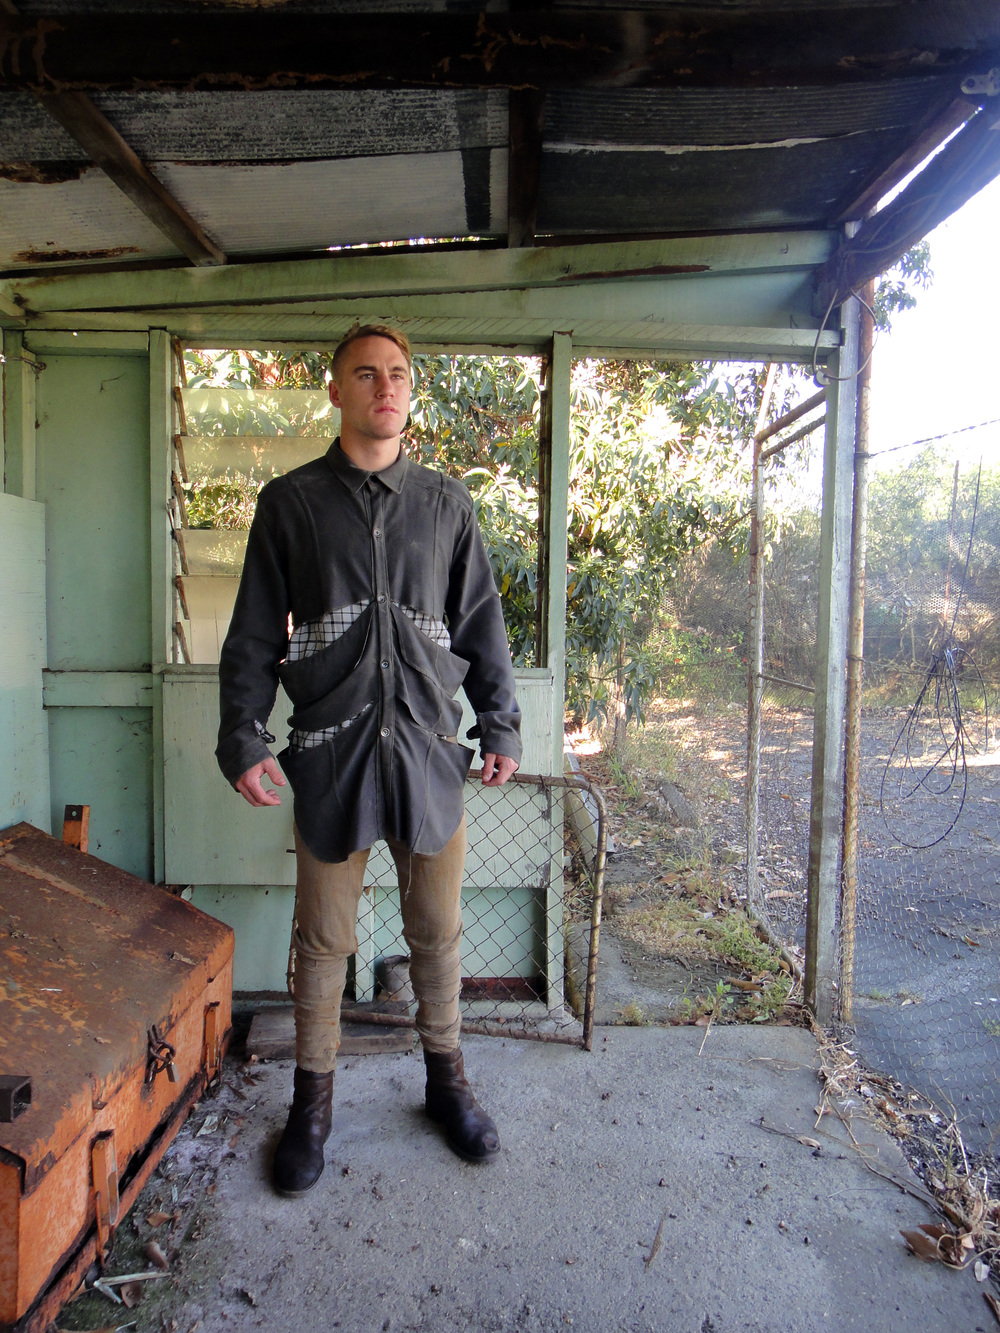 Brown Outfit Front.jpg